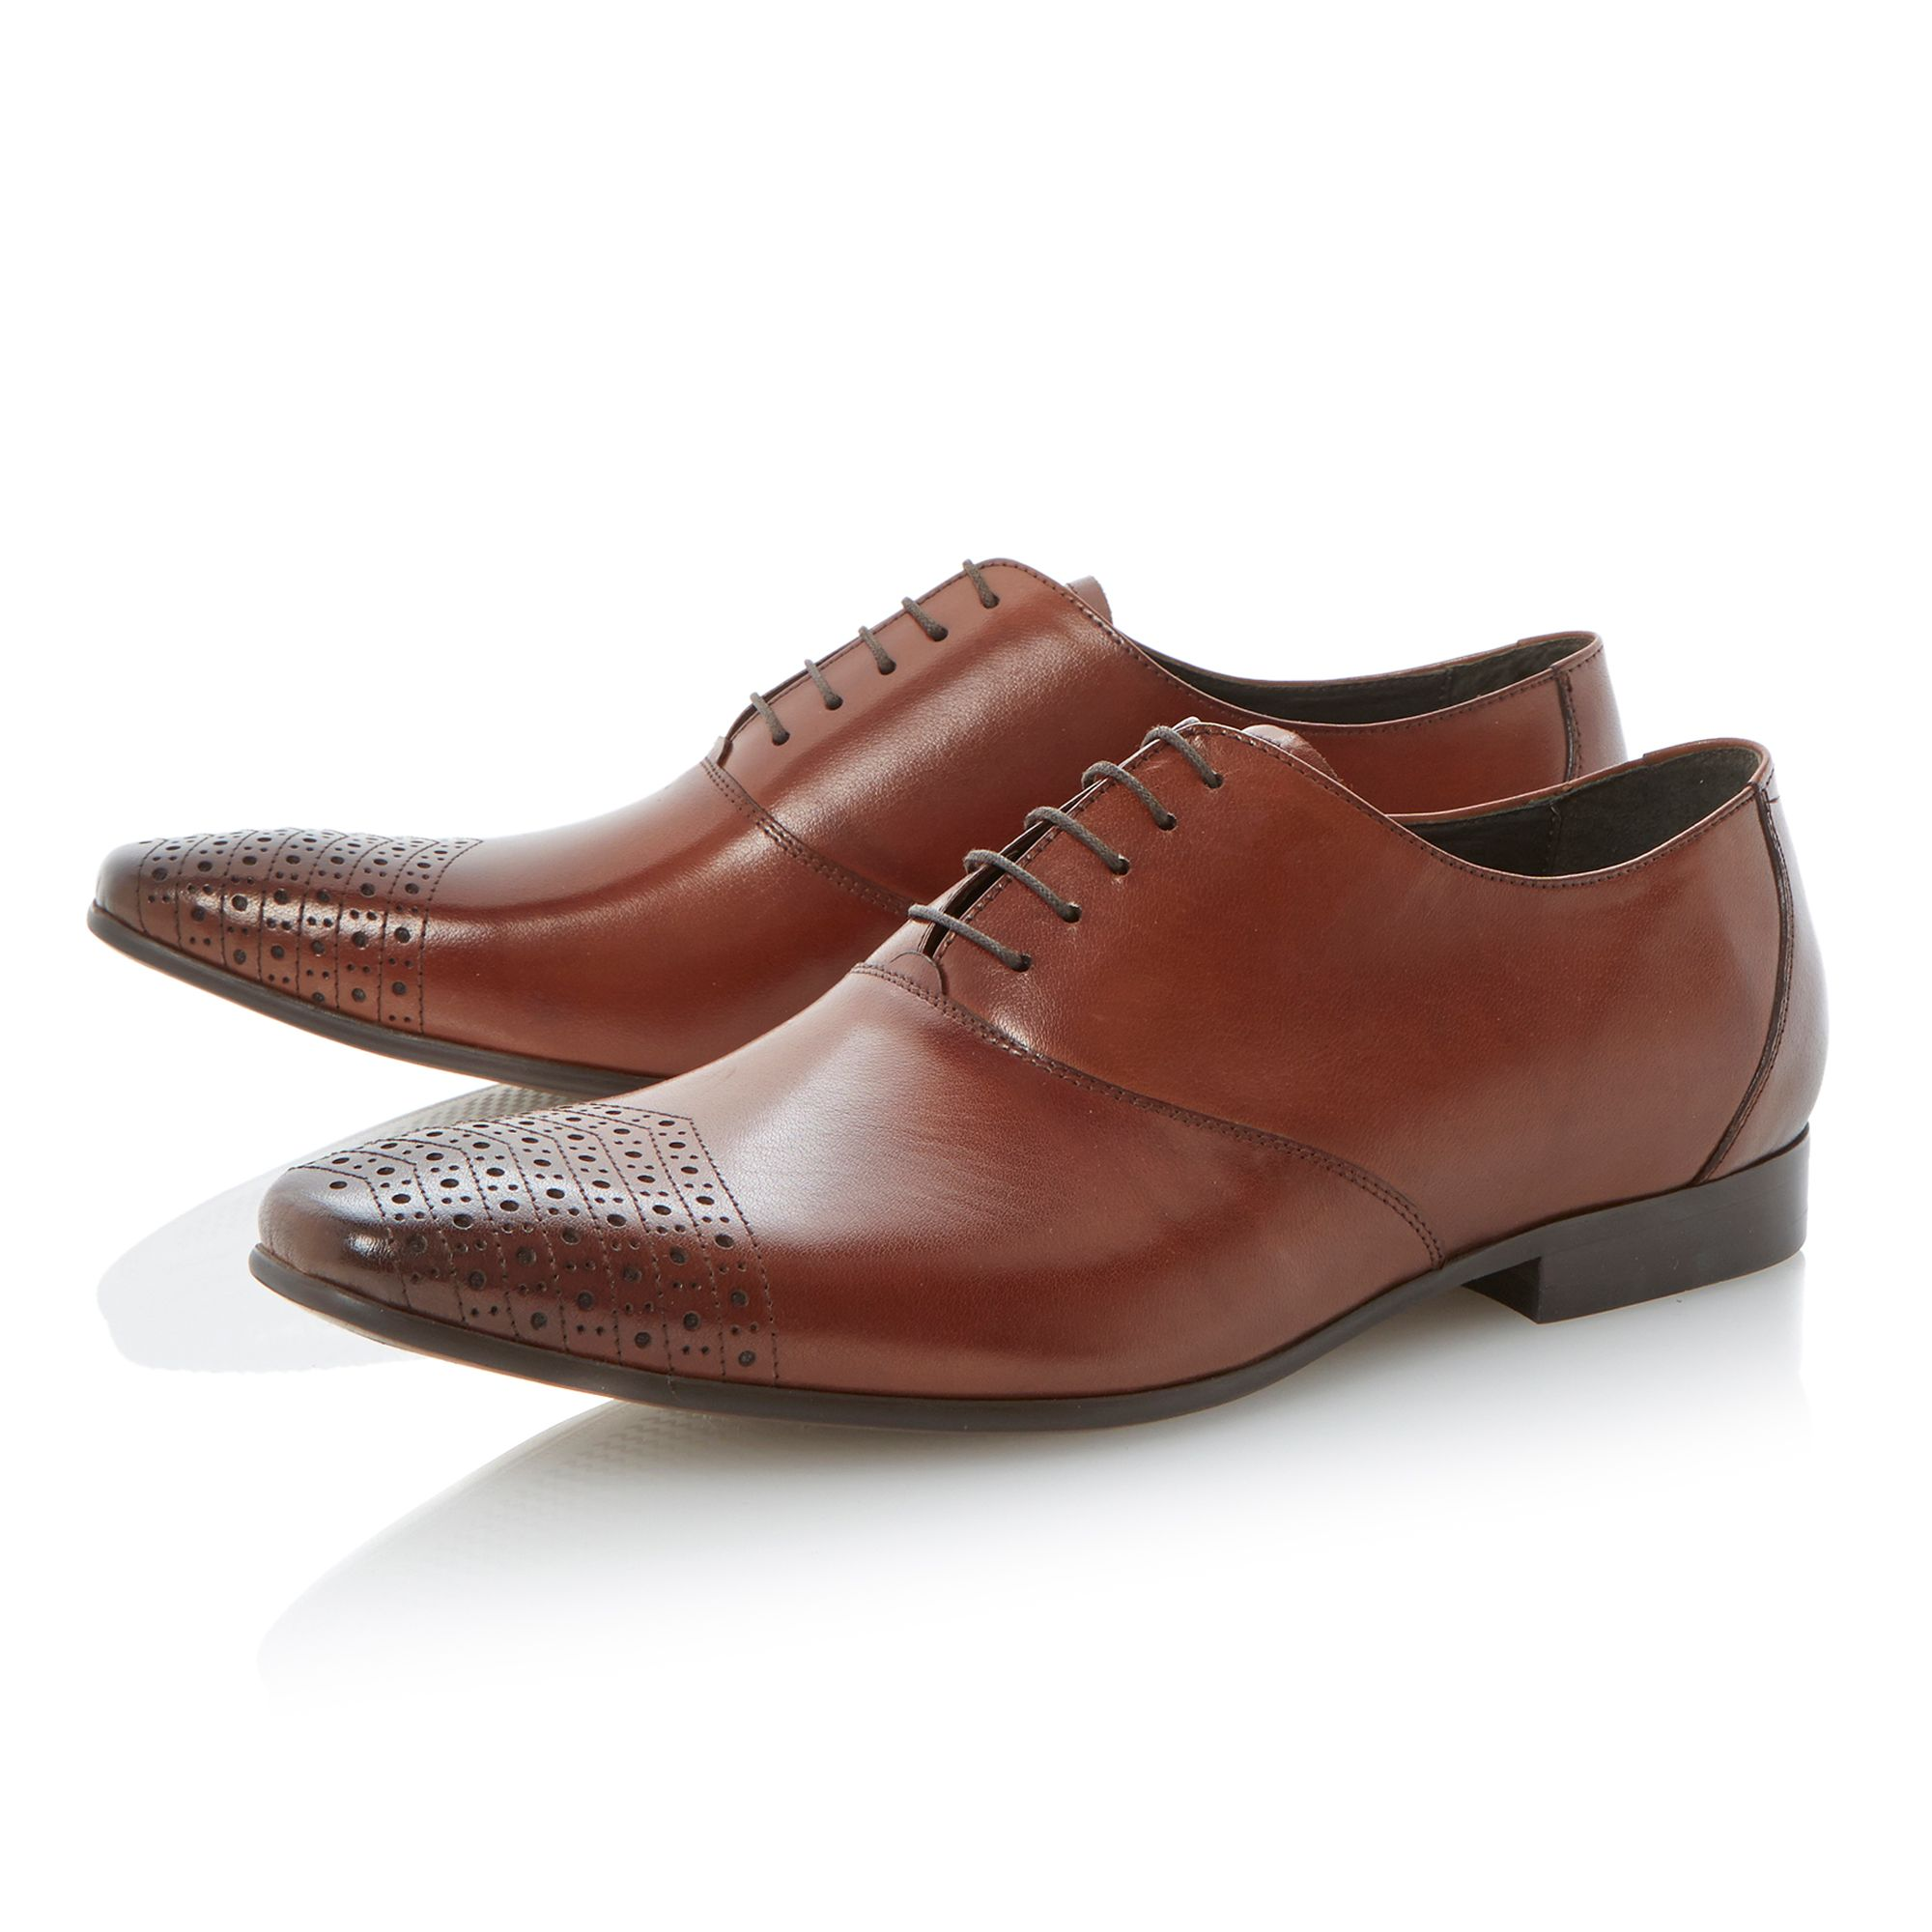 Accountant lace up formal shoes